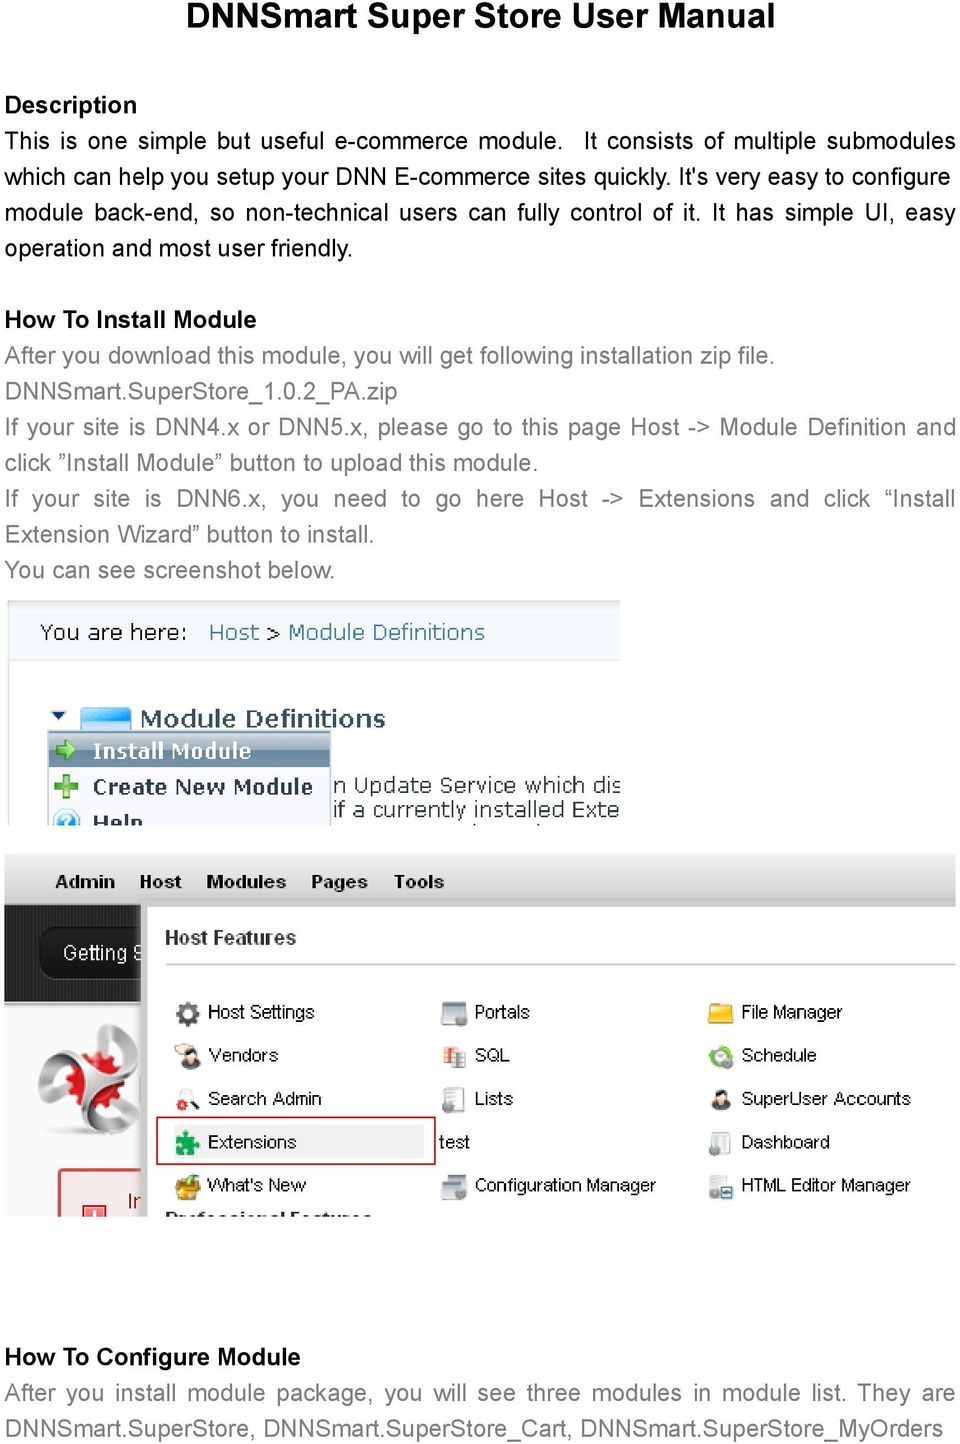 How To Install Module After you download this module, you will get following installation zip file. DNNSmart.SuperStore_1.0.2_PA.zip If your site is DNN4.x or DNN5.